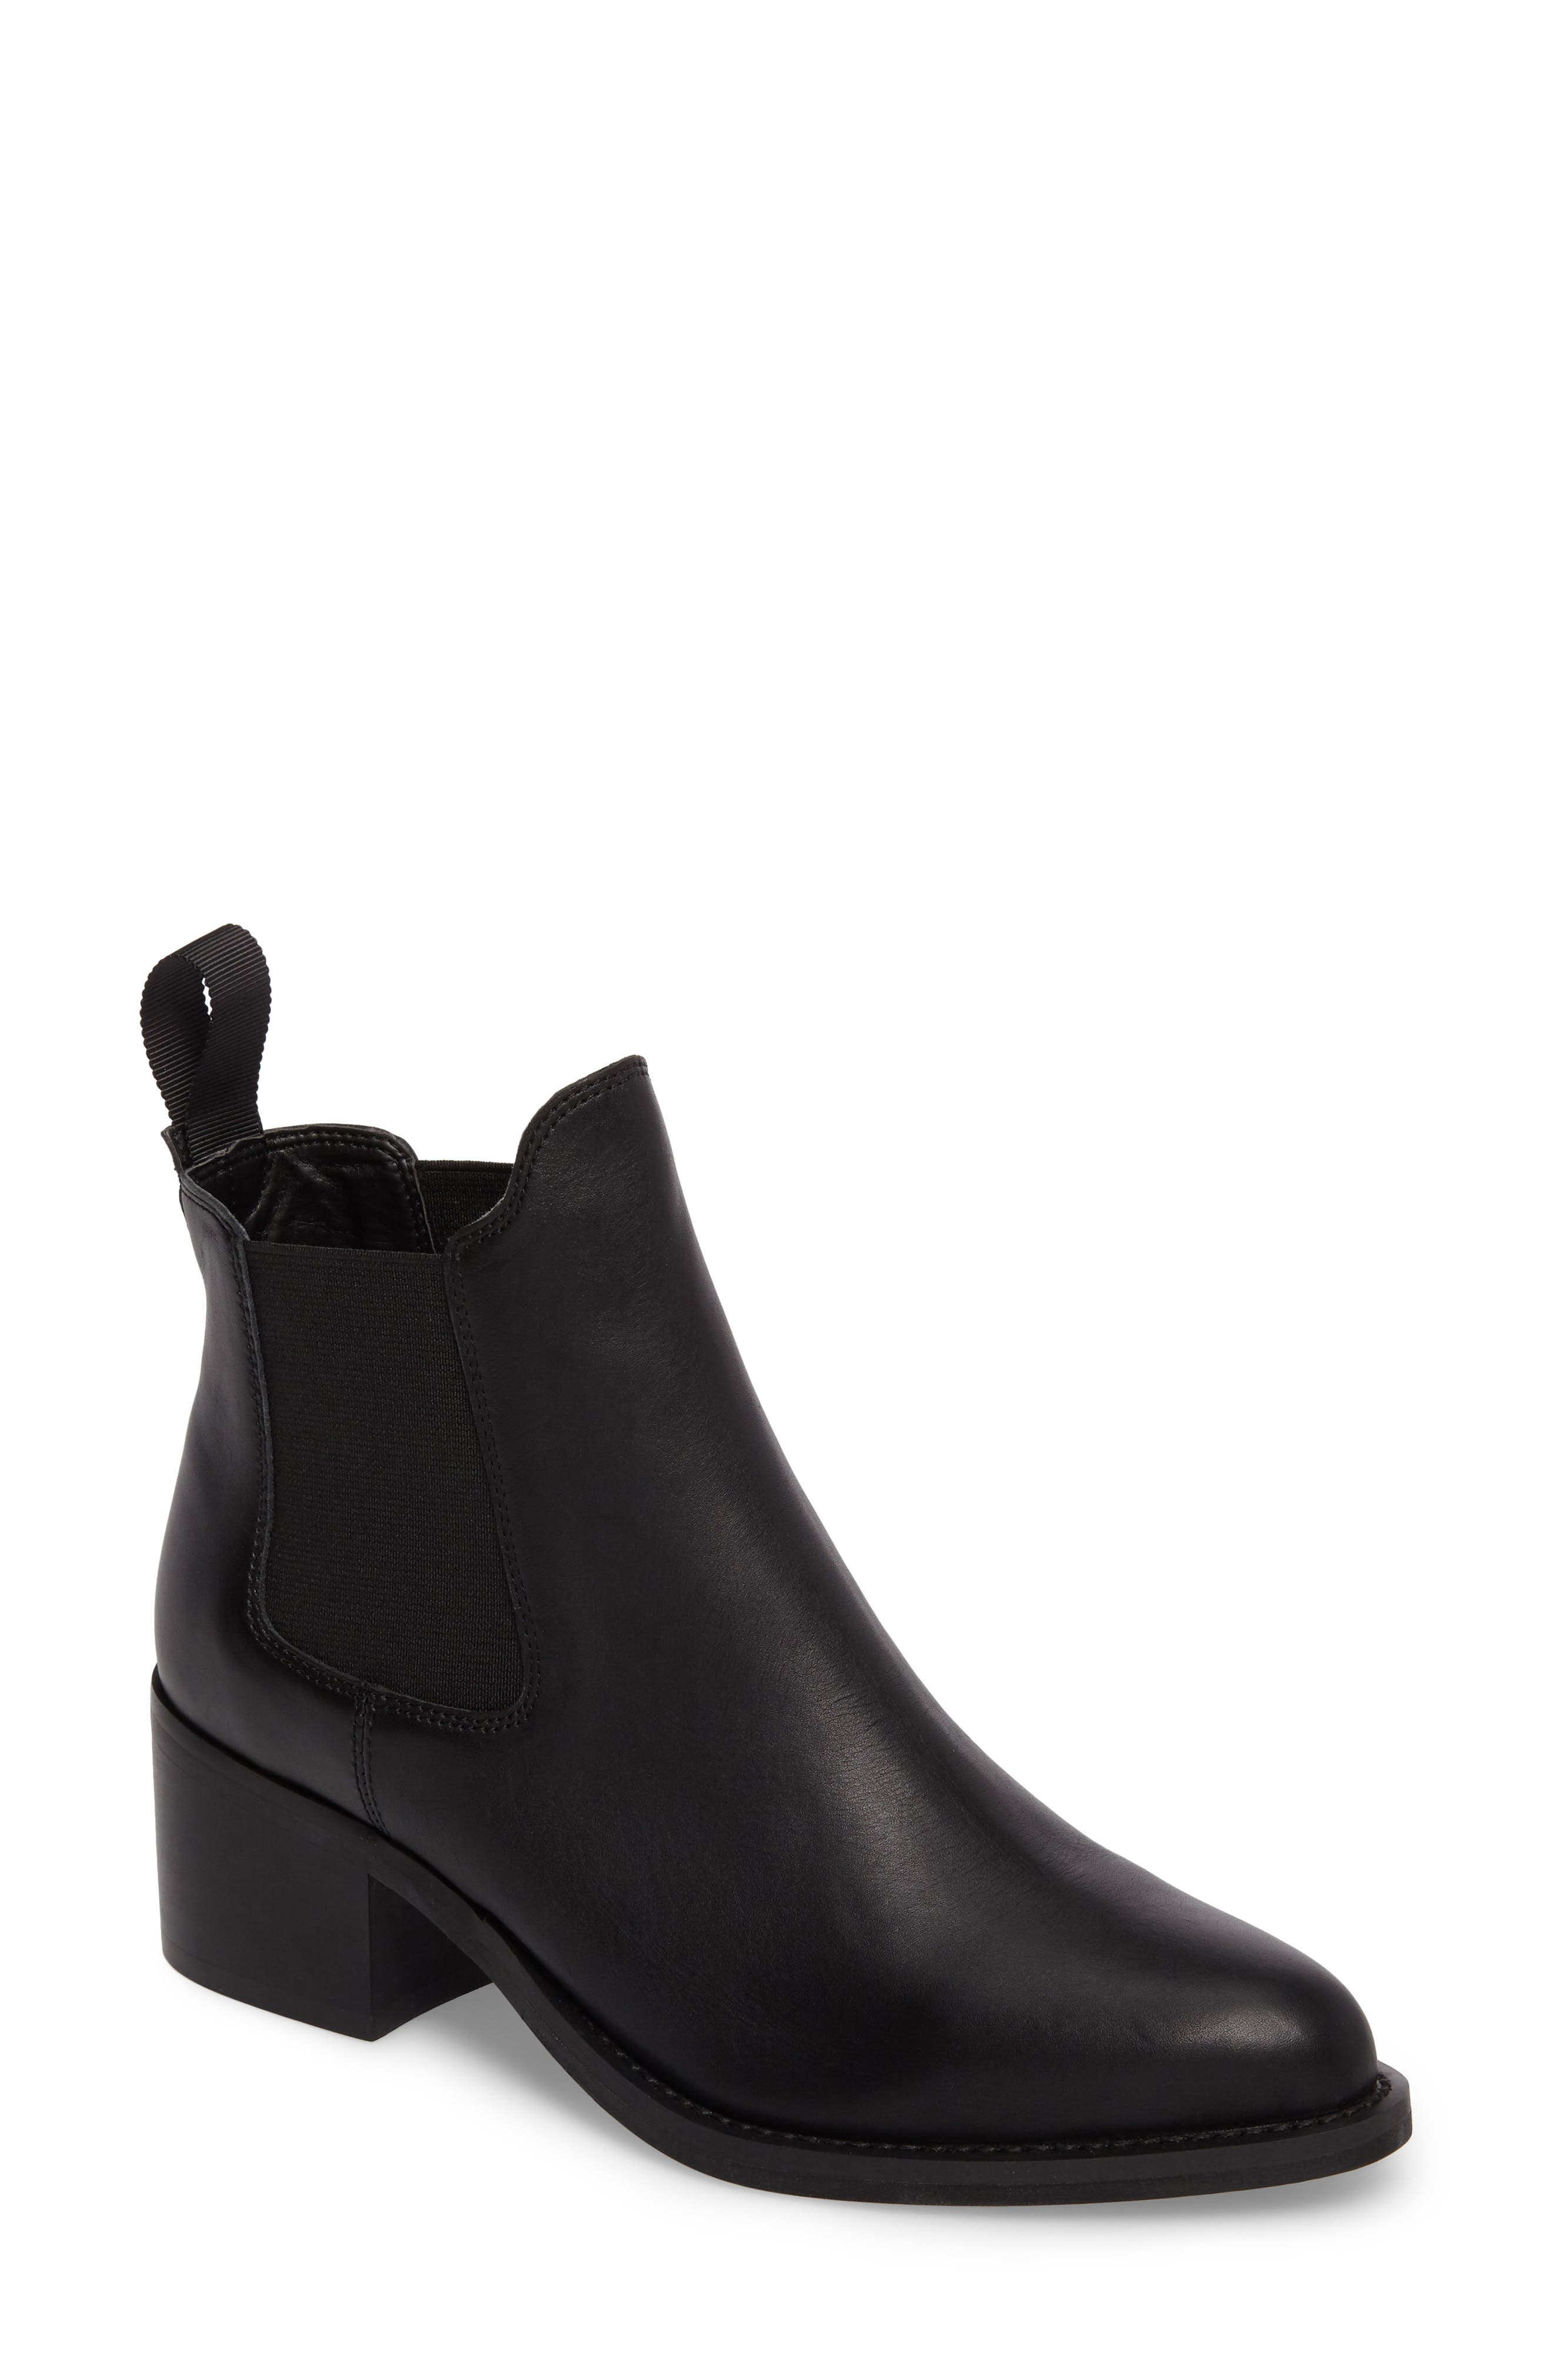 Alternate Image 1 Selected - Tony Bianco Fraya Ankle Bootie (Women)